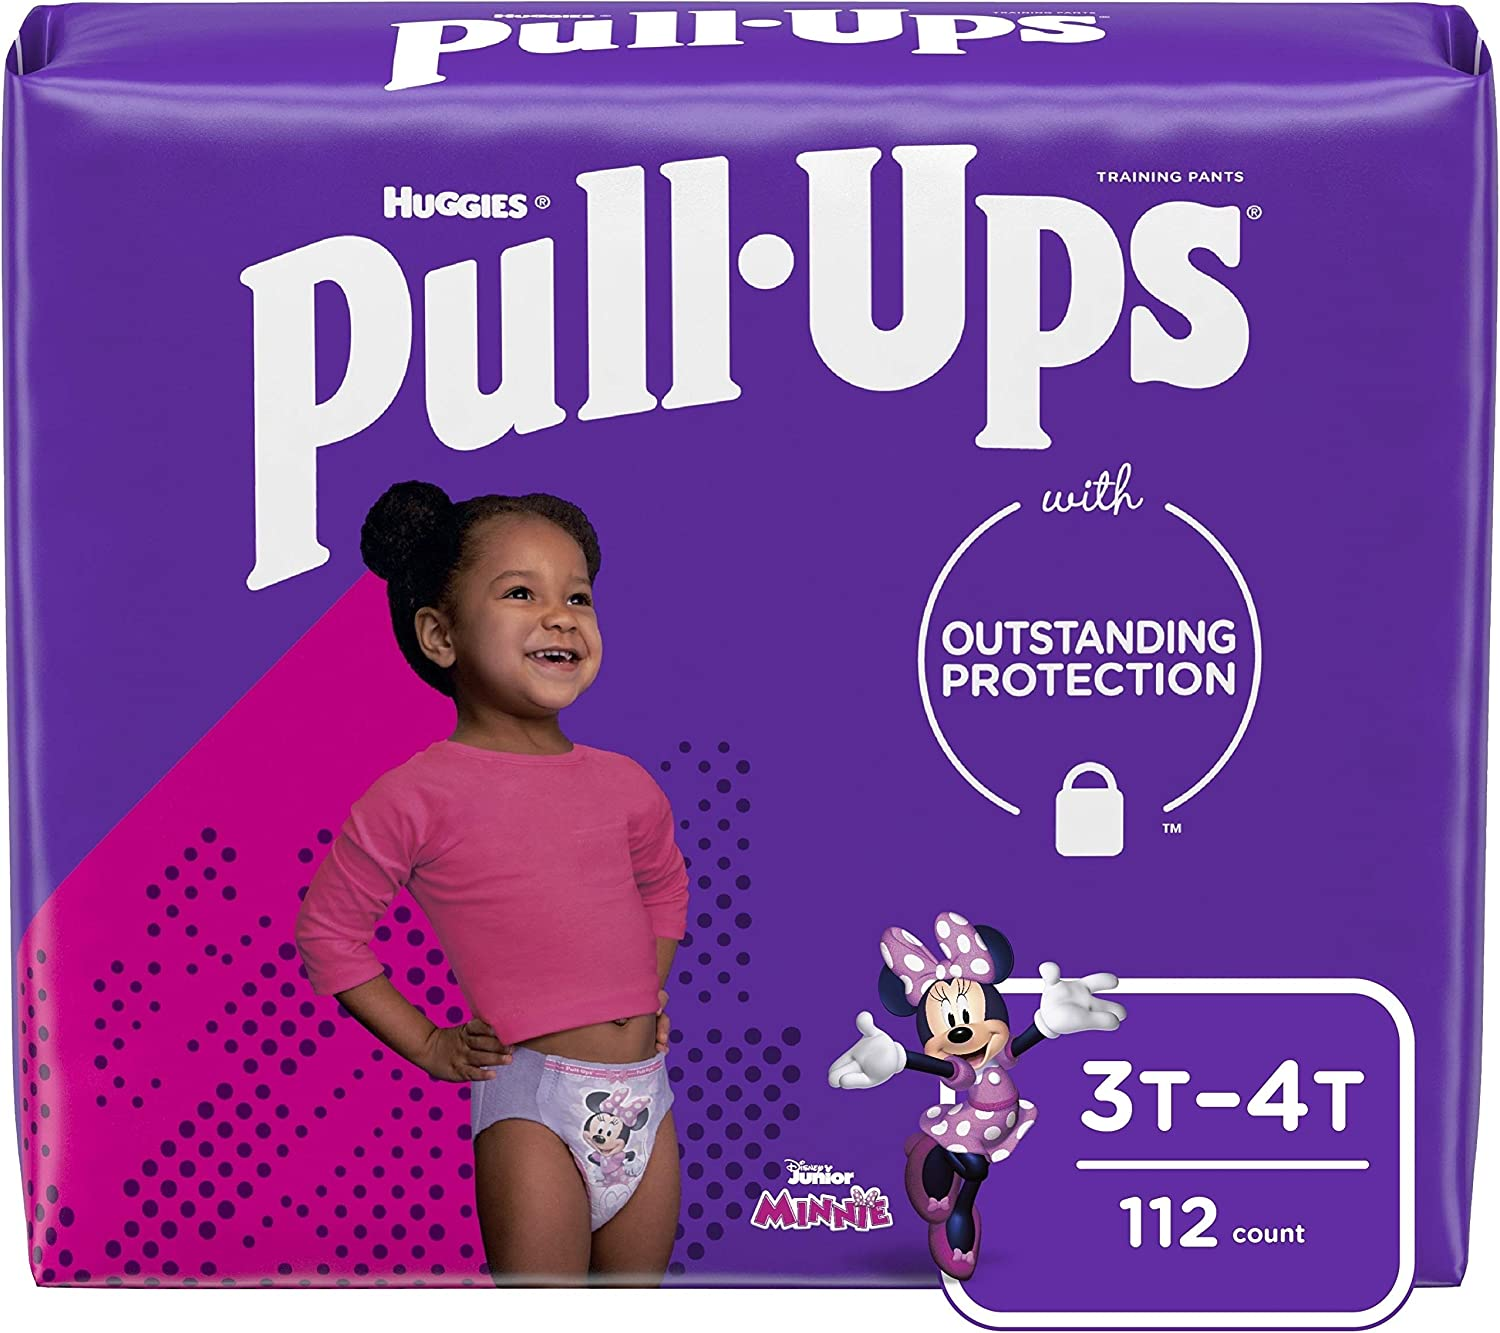 Pull-Ups Learning Designs Girls' Training Pants, 3T-4T, 112 Ct